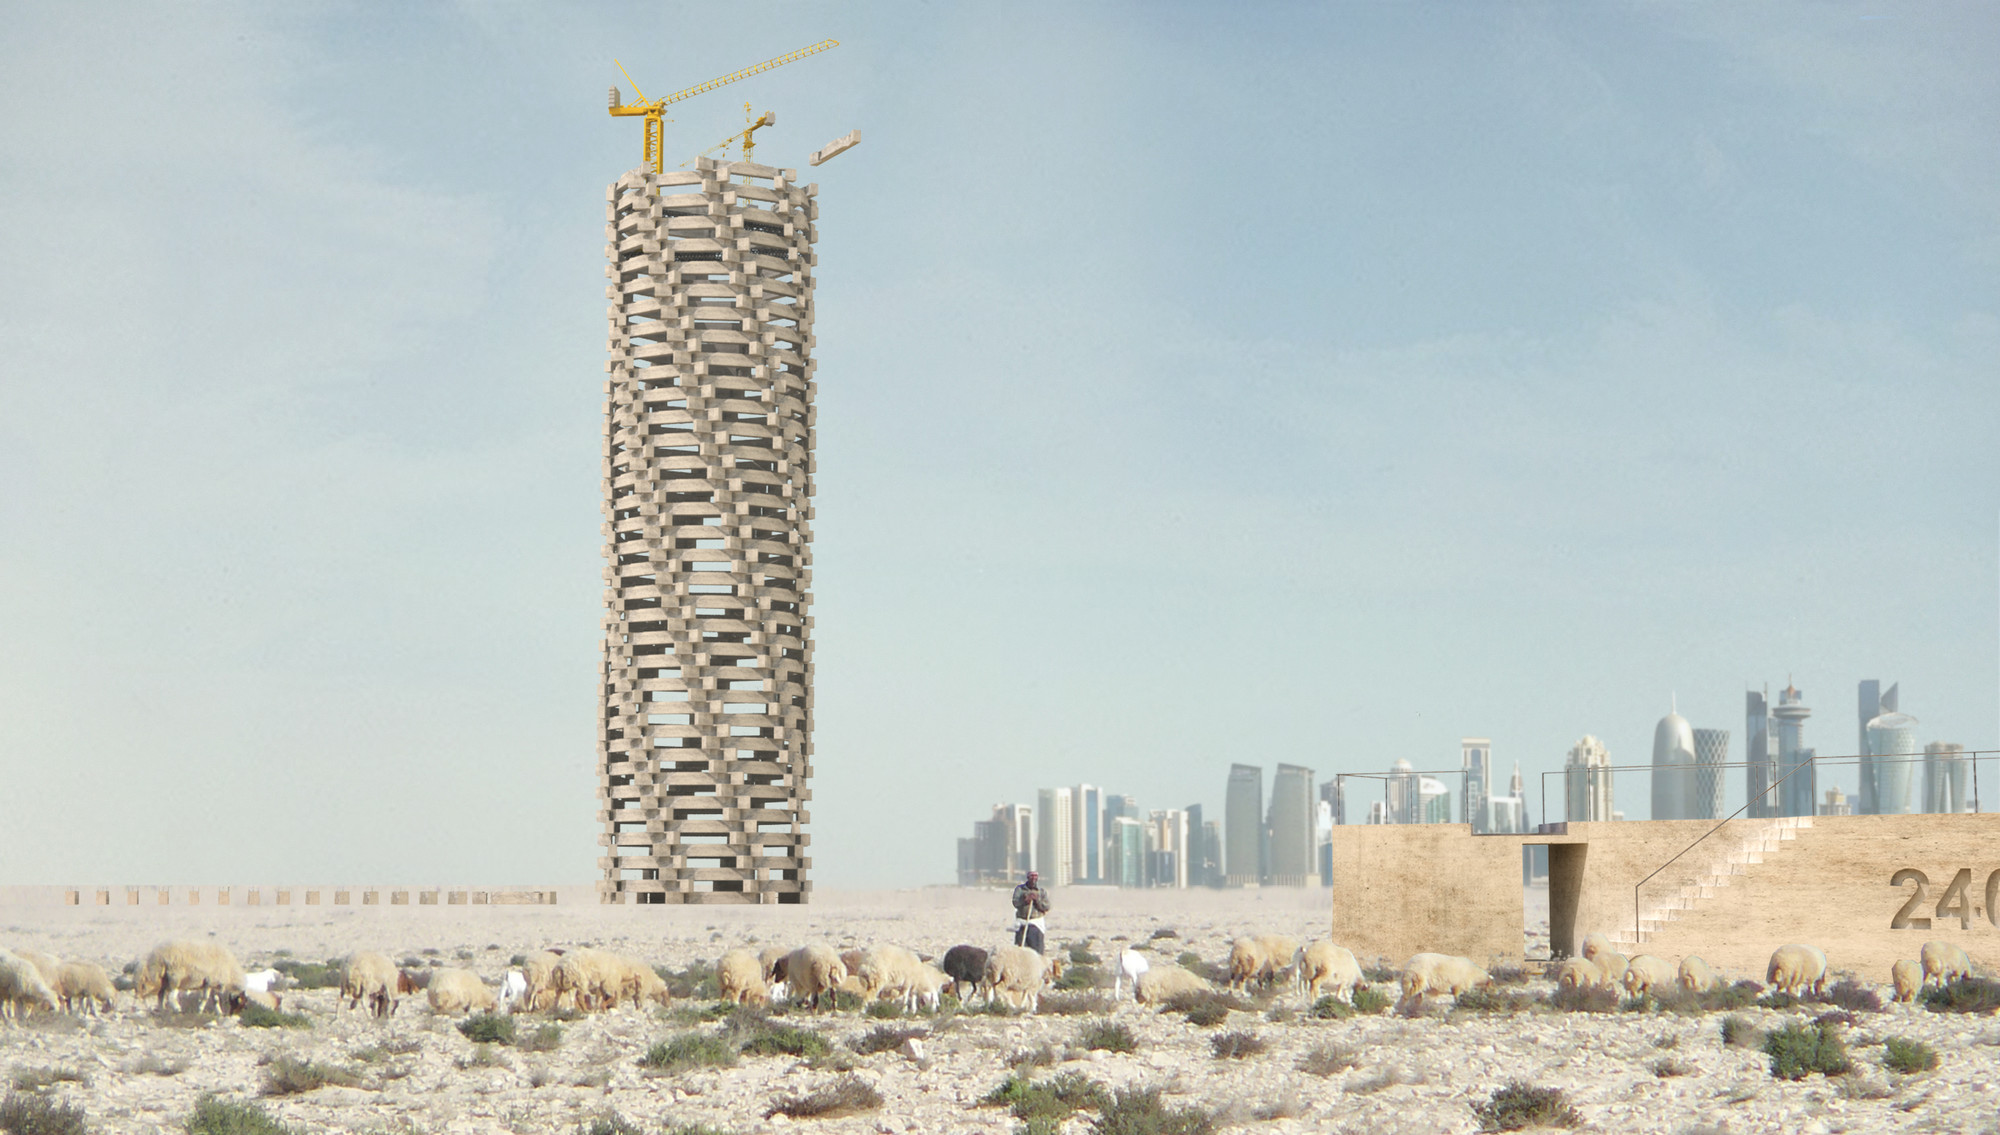 Towering Folly: As Qatar's Death Toll Rises, So Does This Monument, Courtesy of 1week1project